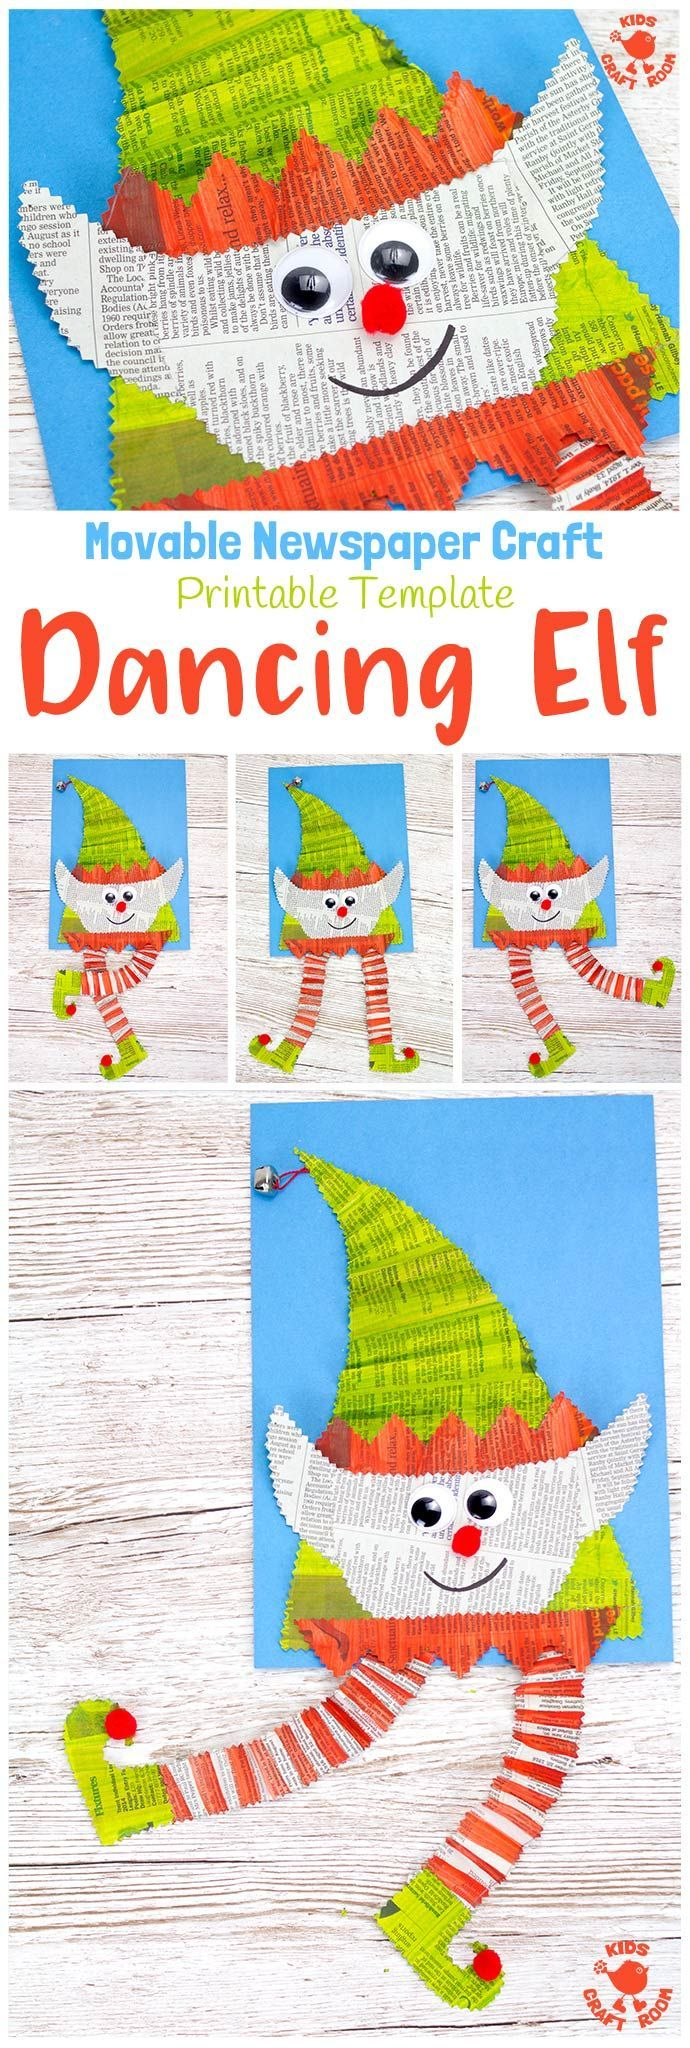 DANCING NEWSPAPER ELF CRAFT - Here's an adorable interactive Dancing Elf Craft the kids are going to love. Such a fun Christmas craft! Download the printable template and make an elf that not only looks cute but dances too! An easy and fun newspaper craft